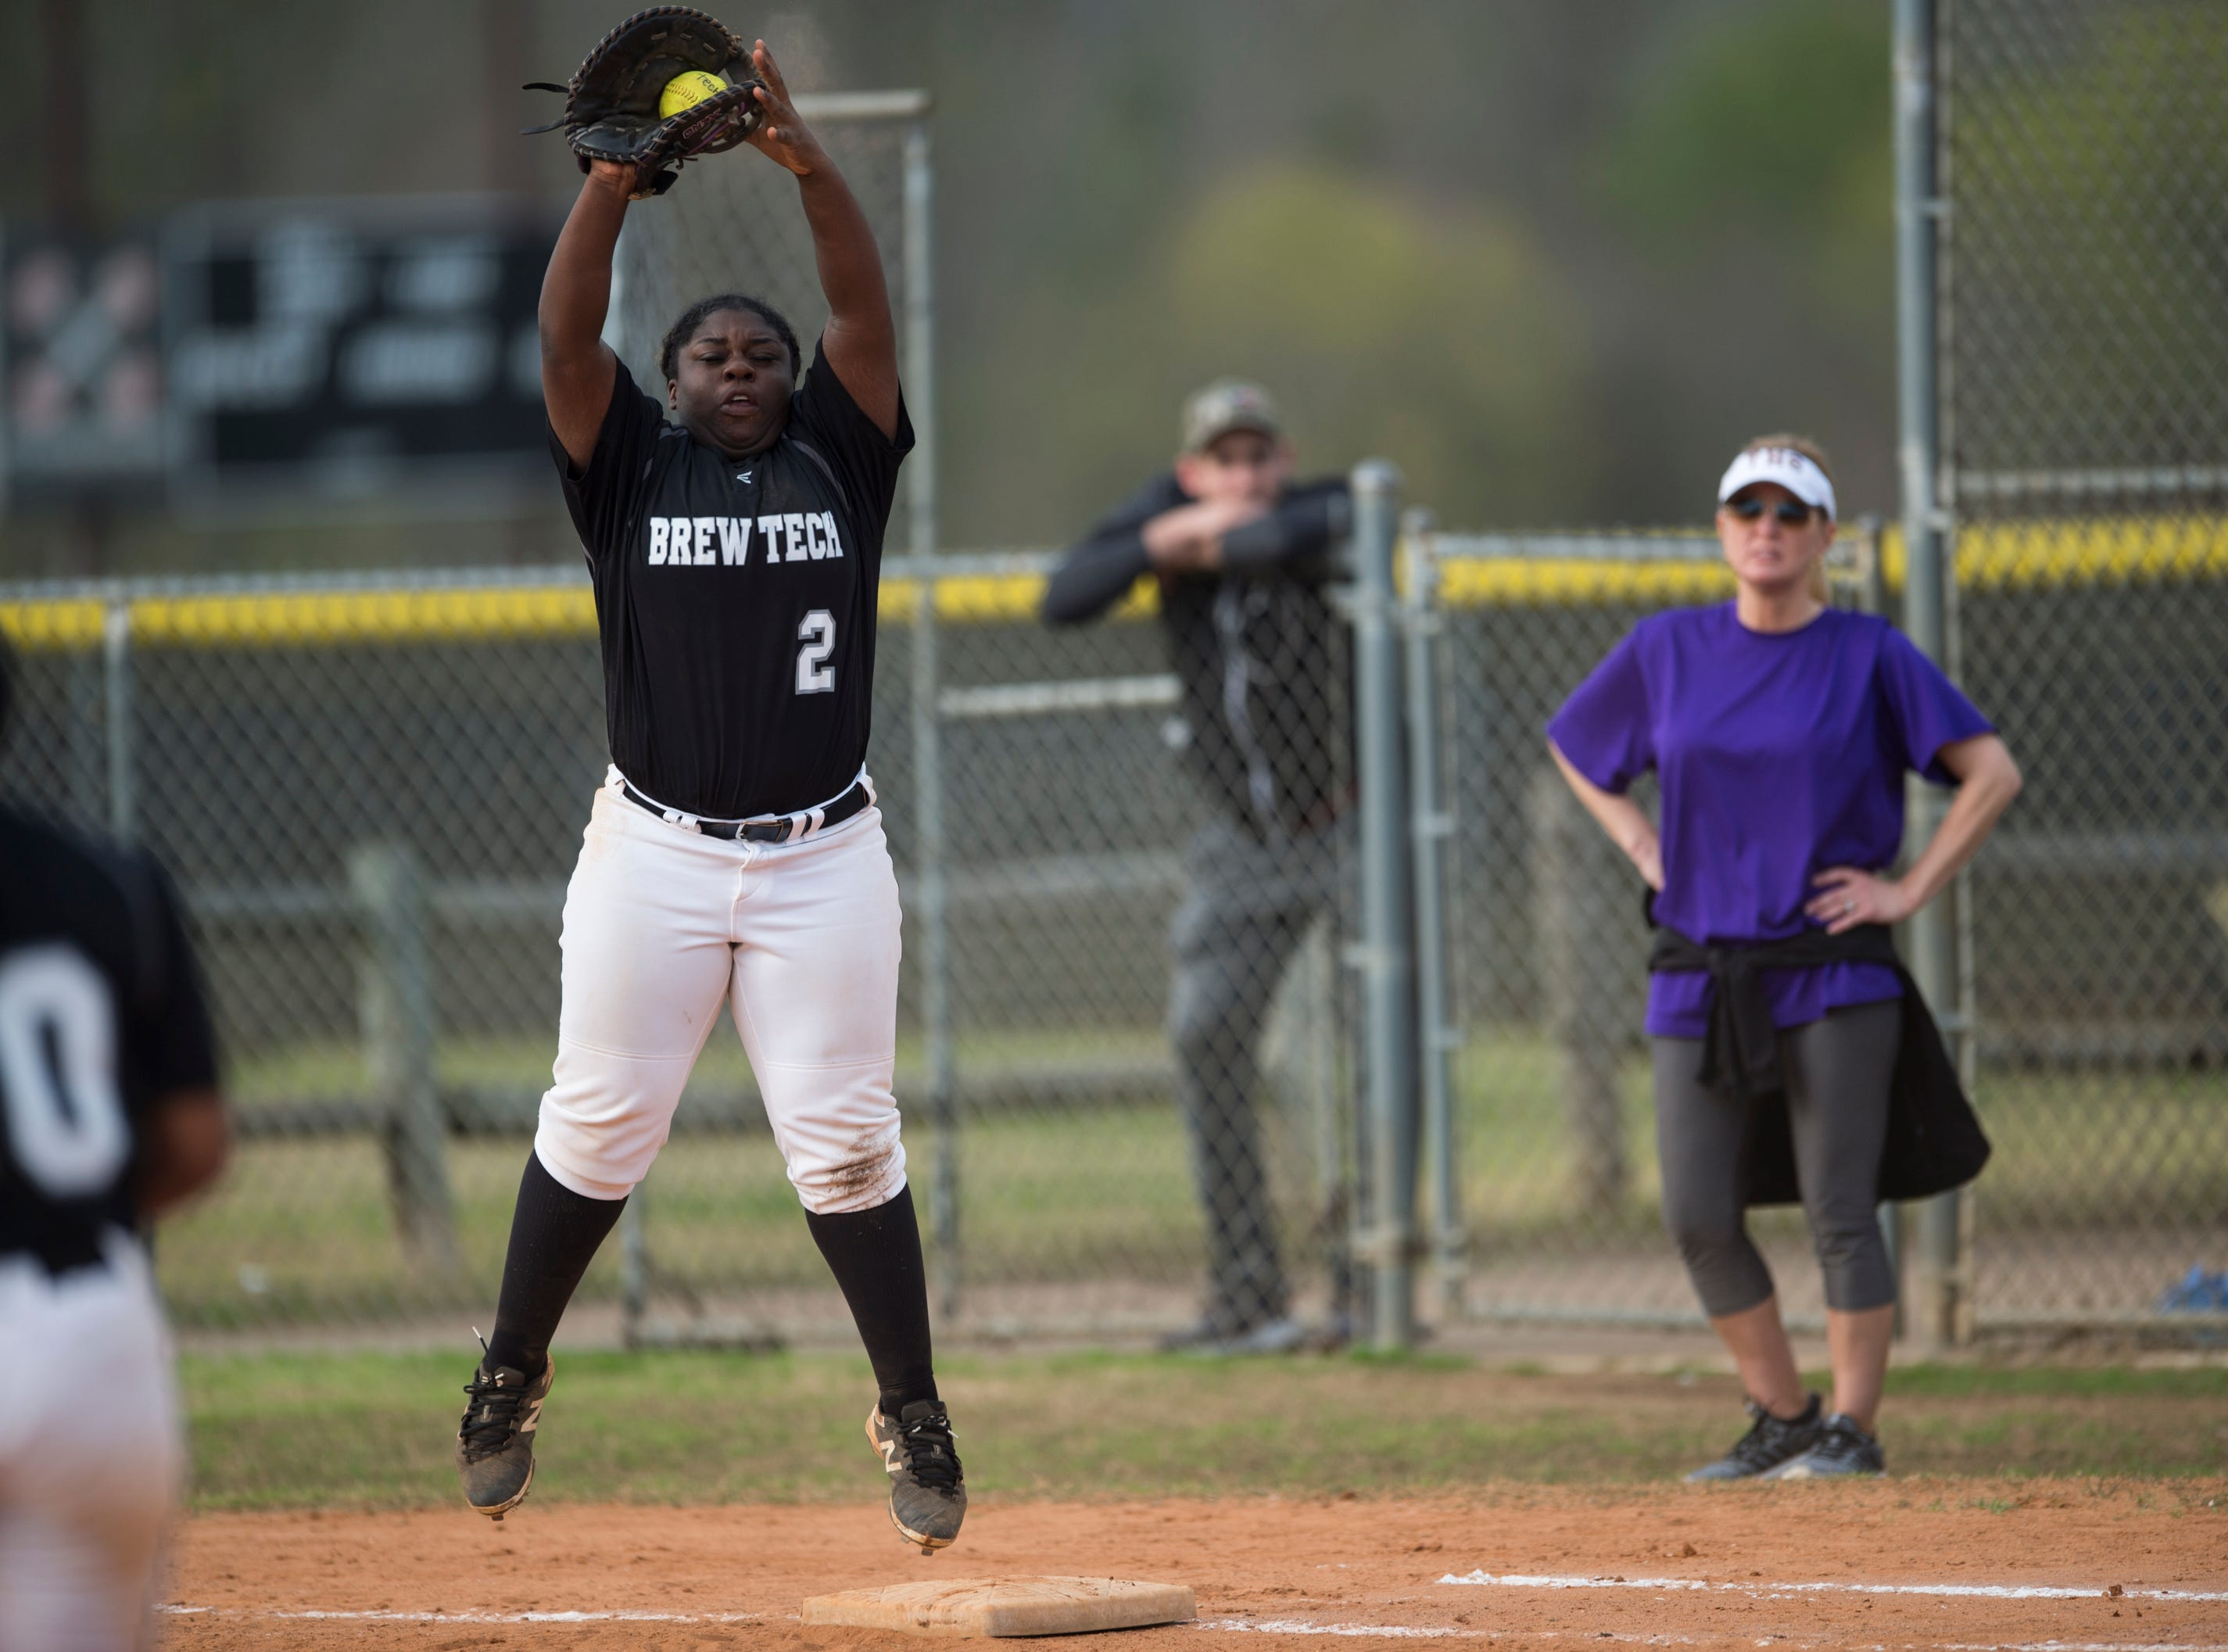 Brew Tech's Brittany Key (2) catches the ball at first base at Thompson Park in Montgomery, Ala., on Thursday, March 14, 2019. Tallassee defeated Brew Tech 7-0.